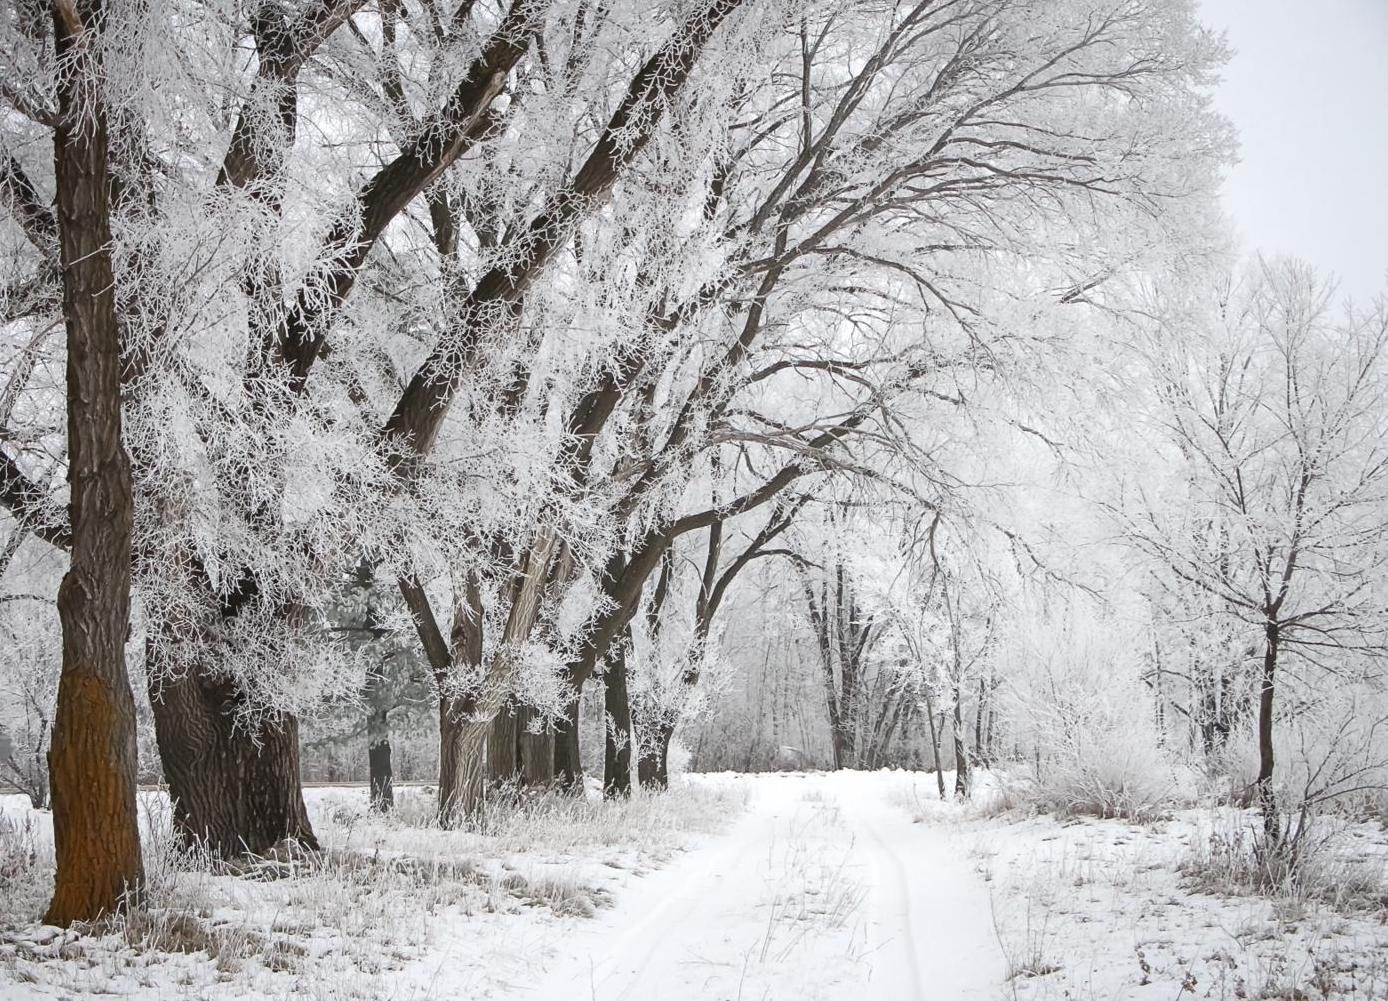 Snowy lane with frosted trees in winter